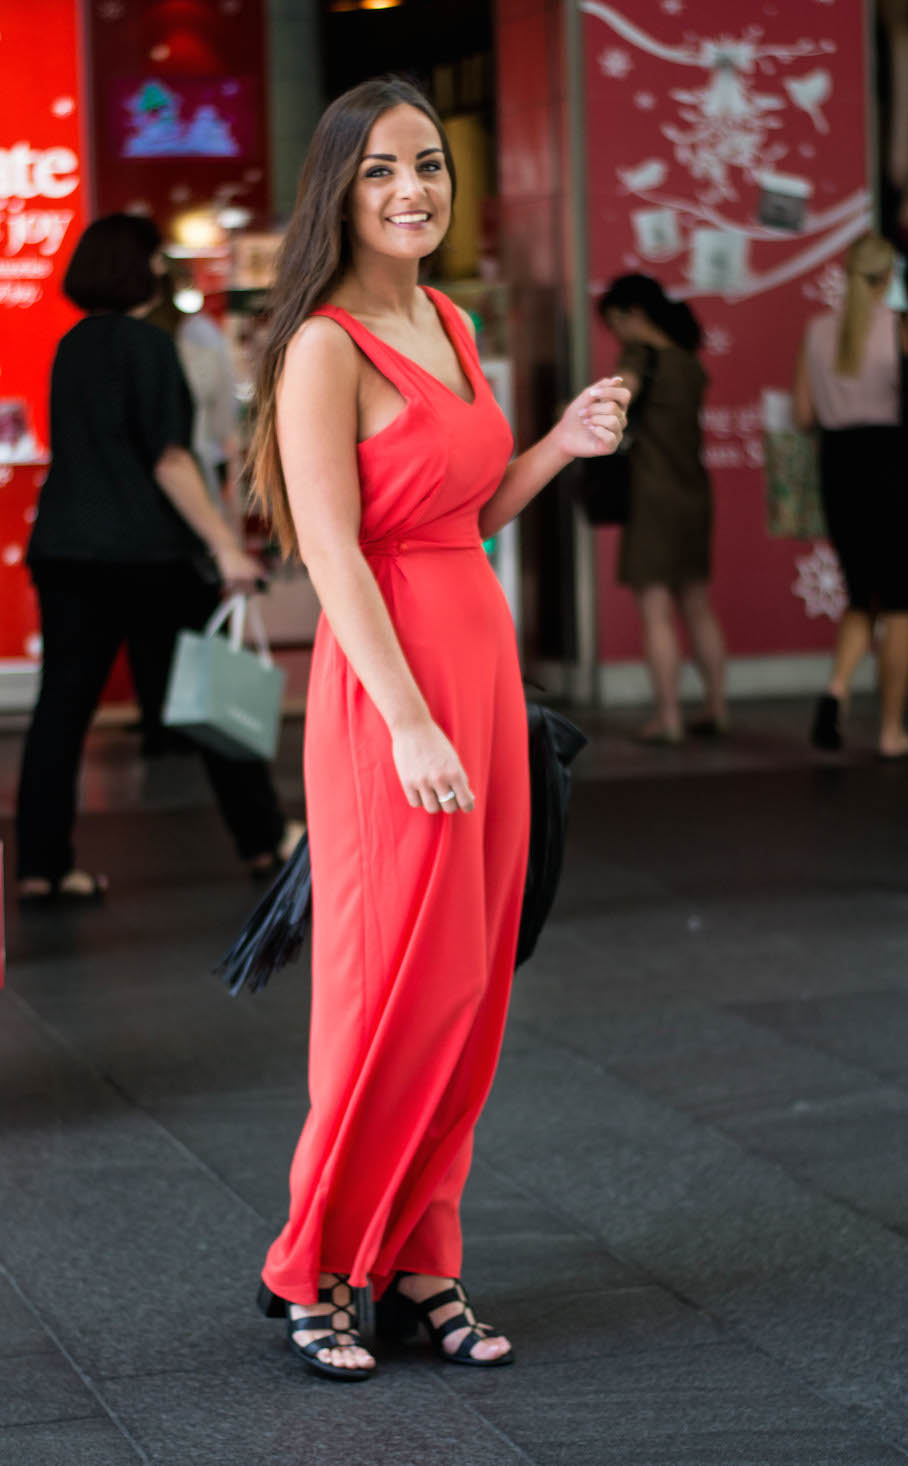 "NSW: Sian Young, Cabin Crew, down town Sydney. ""Red's my colour."" Photo: Alice Sciberras."